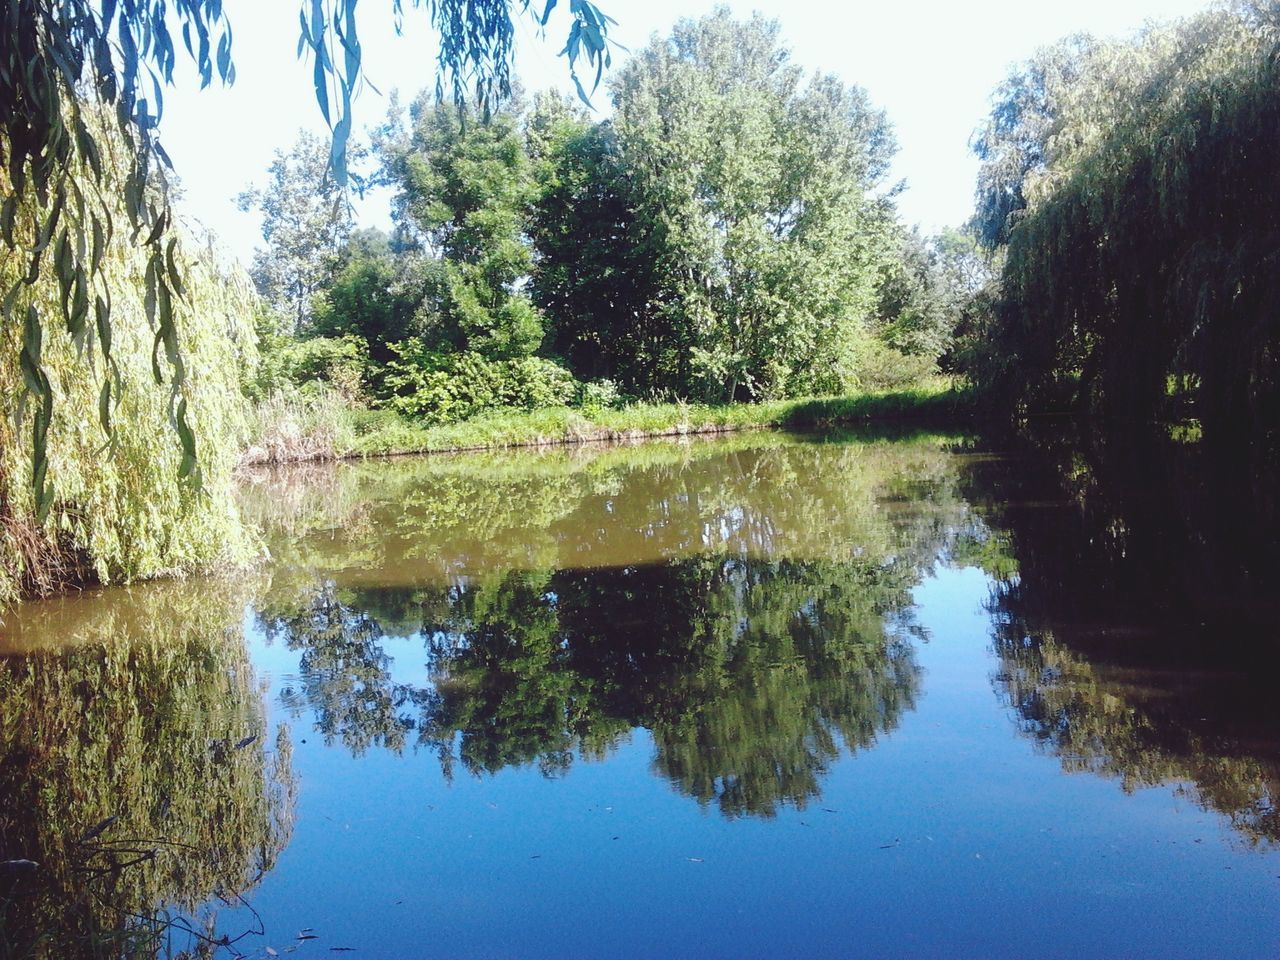 reflection, tree, water, lake, nature, growth, no people, tranquility, day, outdoors, beauty in nature, sky